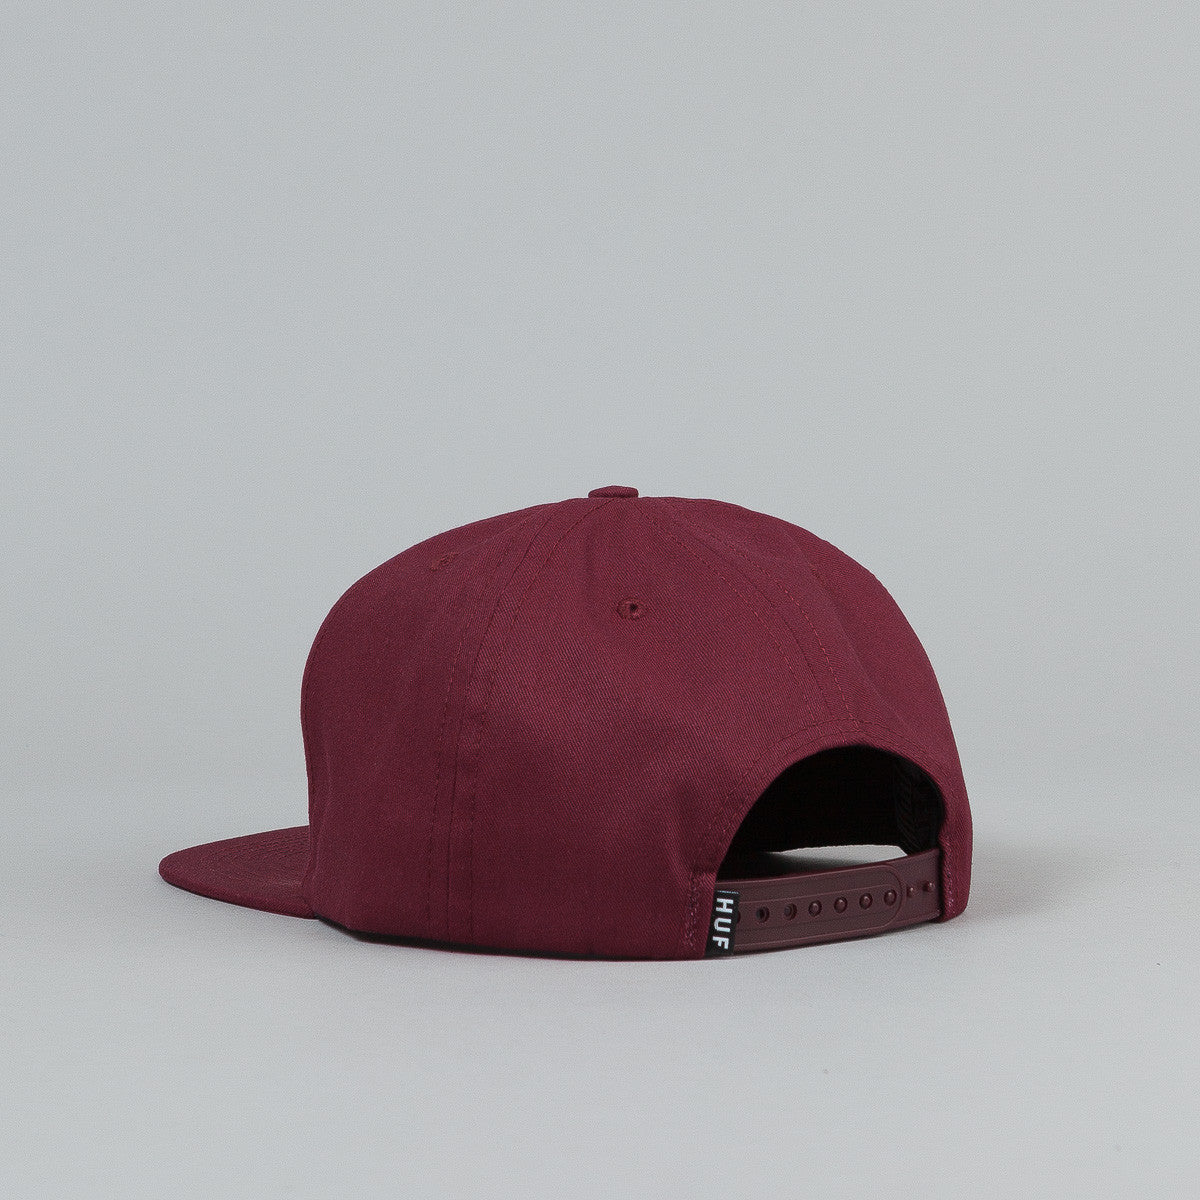 HUF Triple Triangle Snapback Cap - Wine